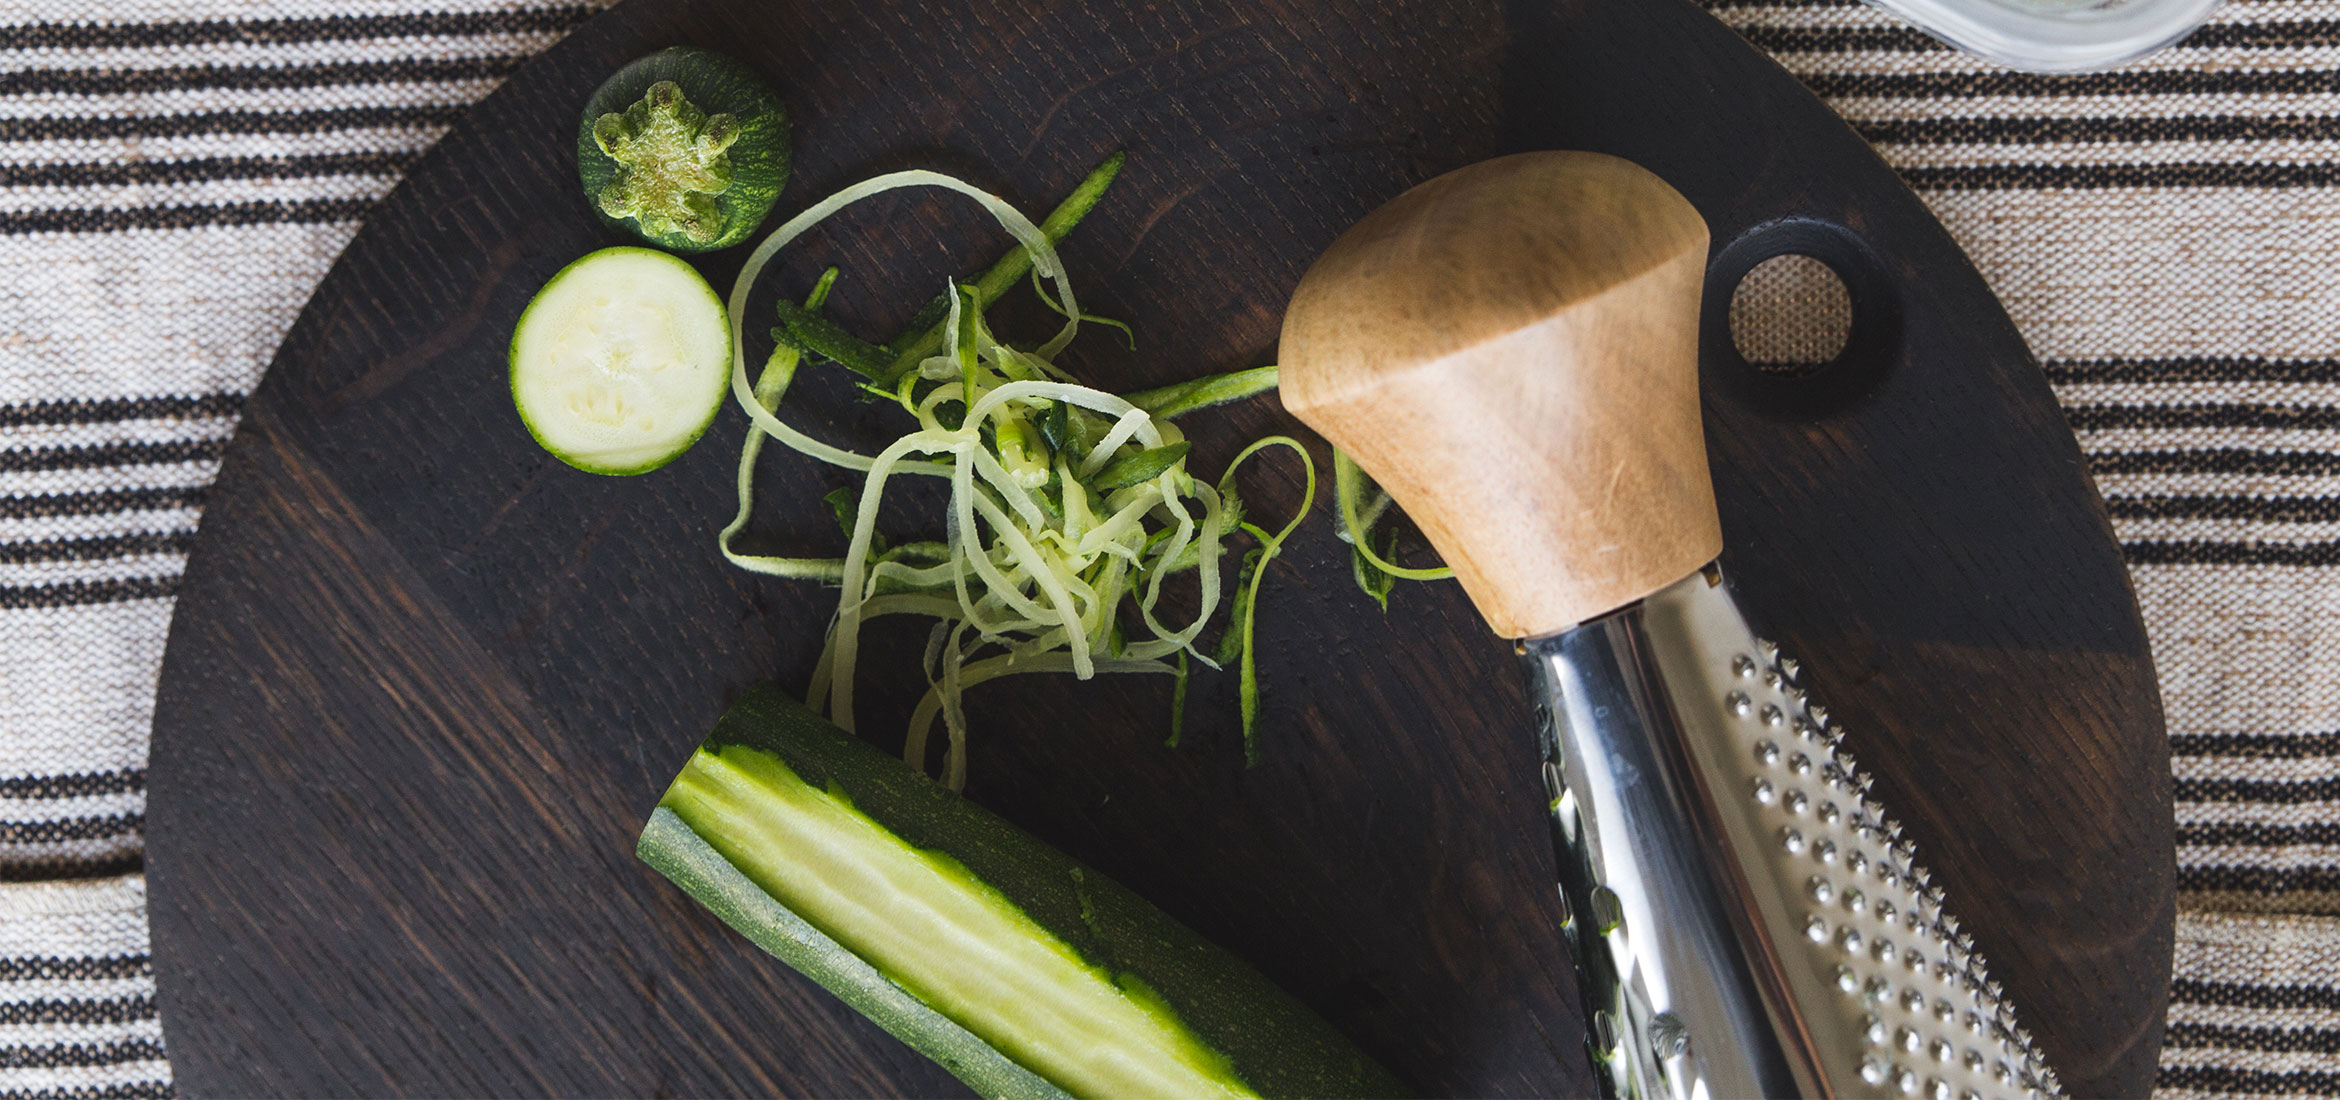 how to cut zucchini into noodles